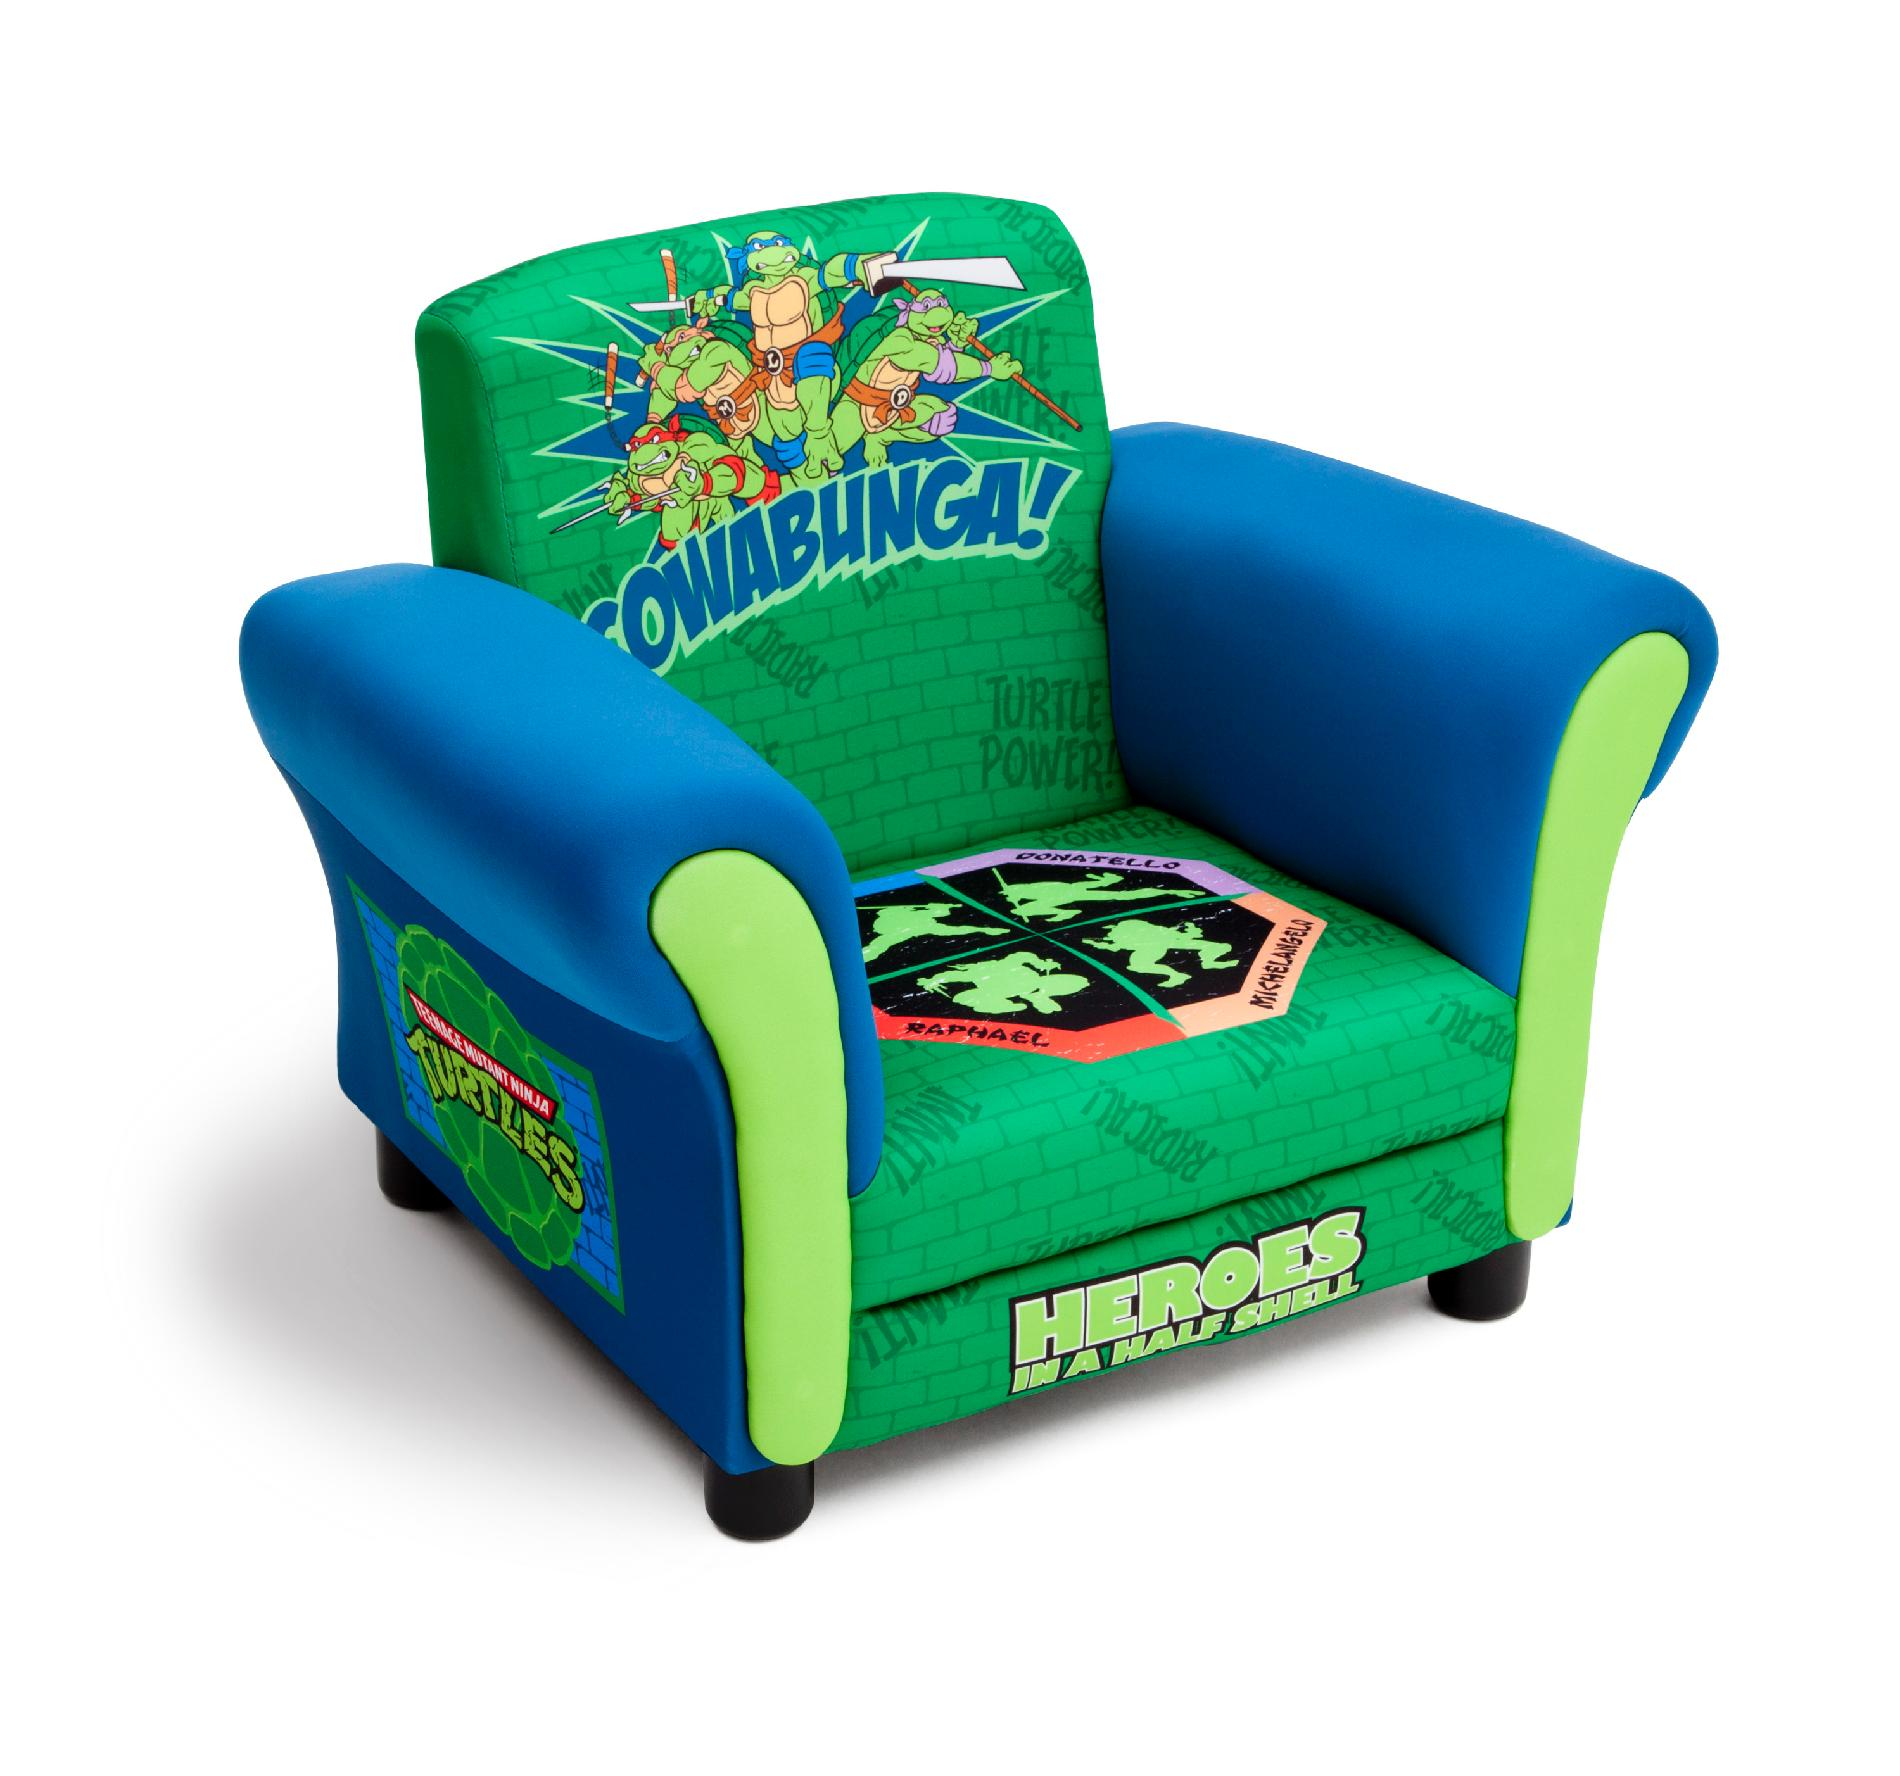 Toddler Chairs Upholstered Delta Children Ninja Turtle Upholstered Chair Baby